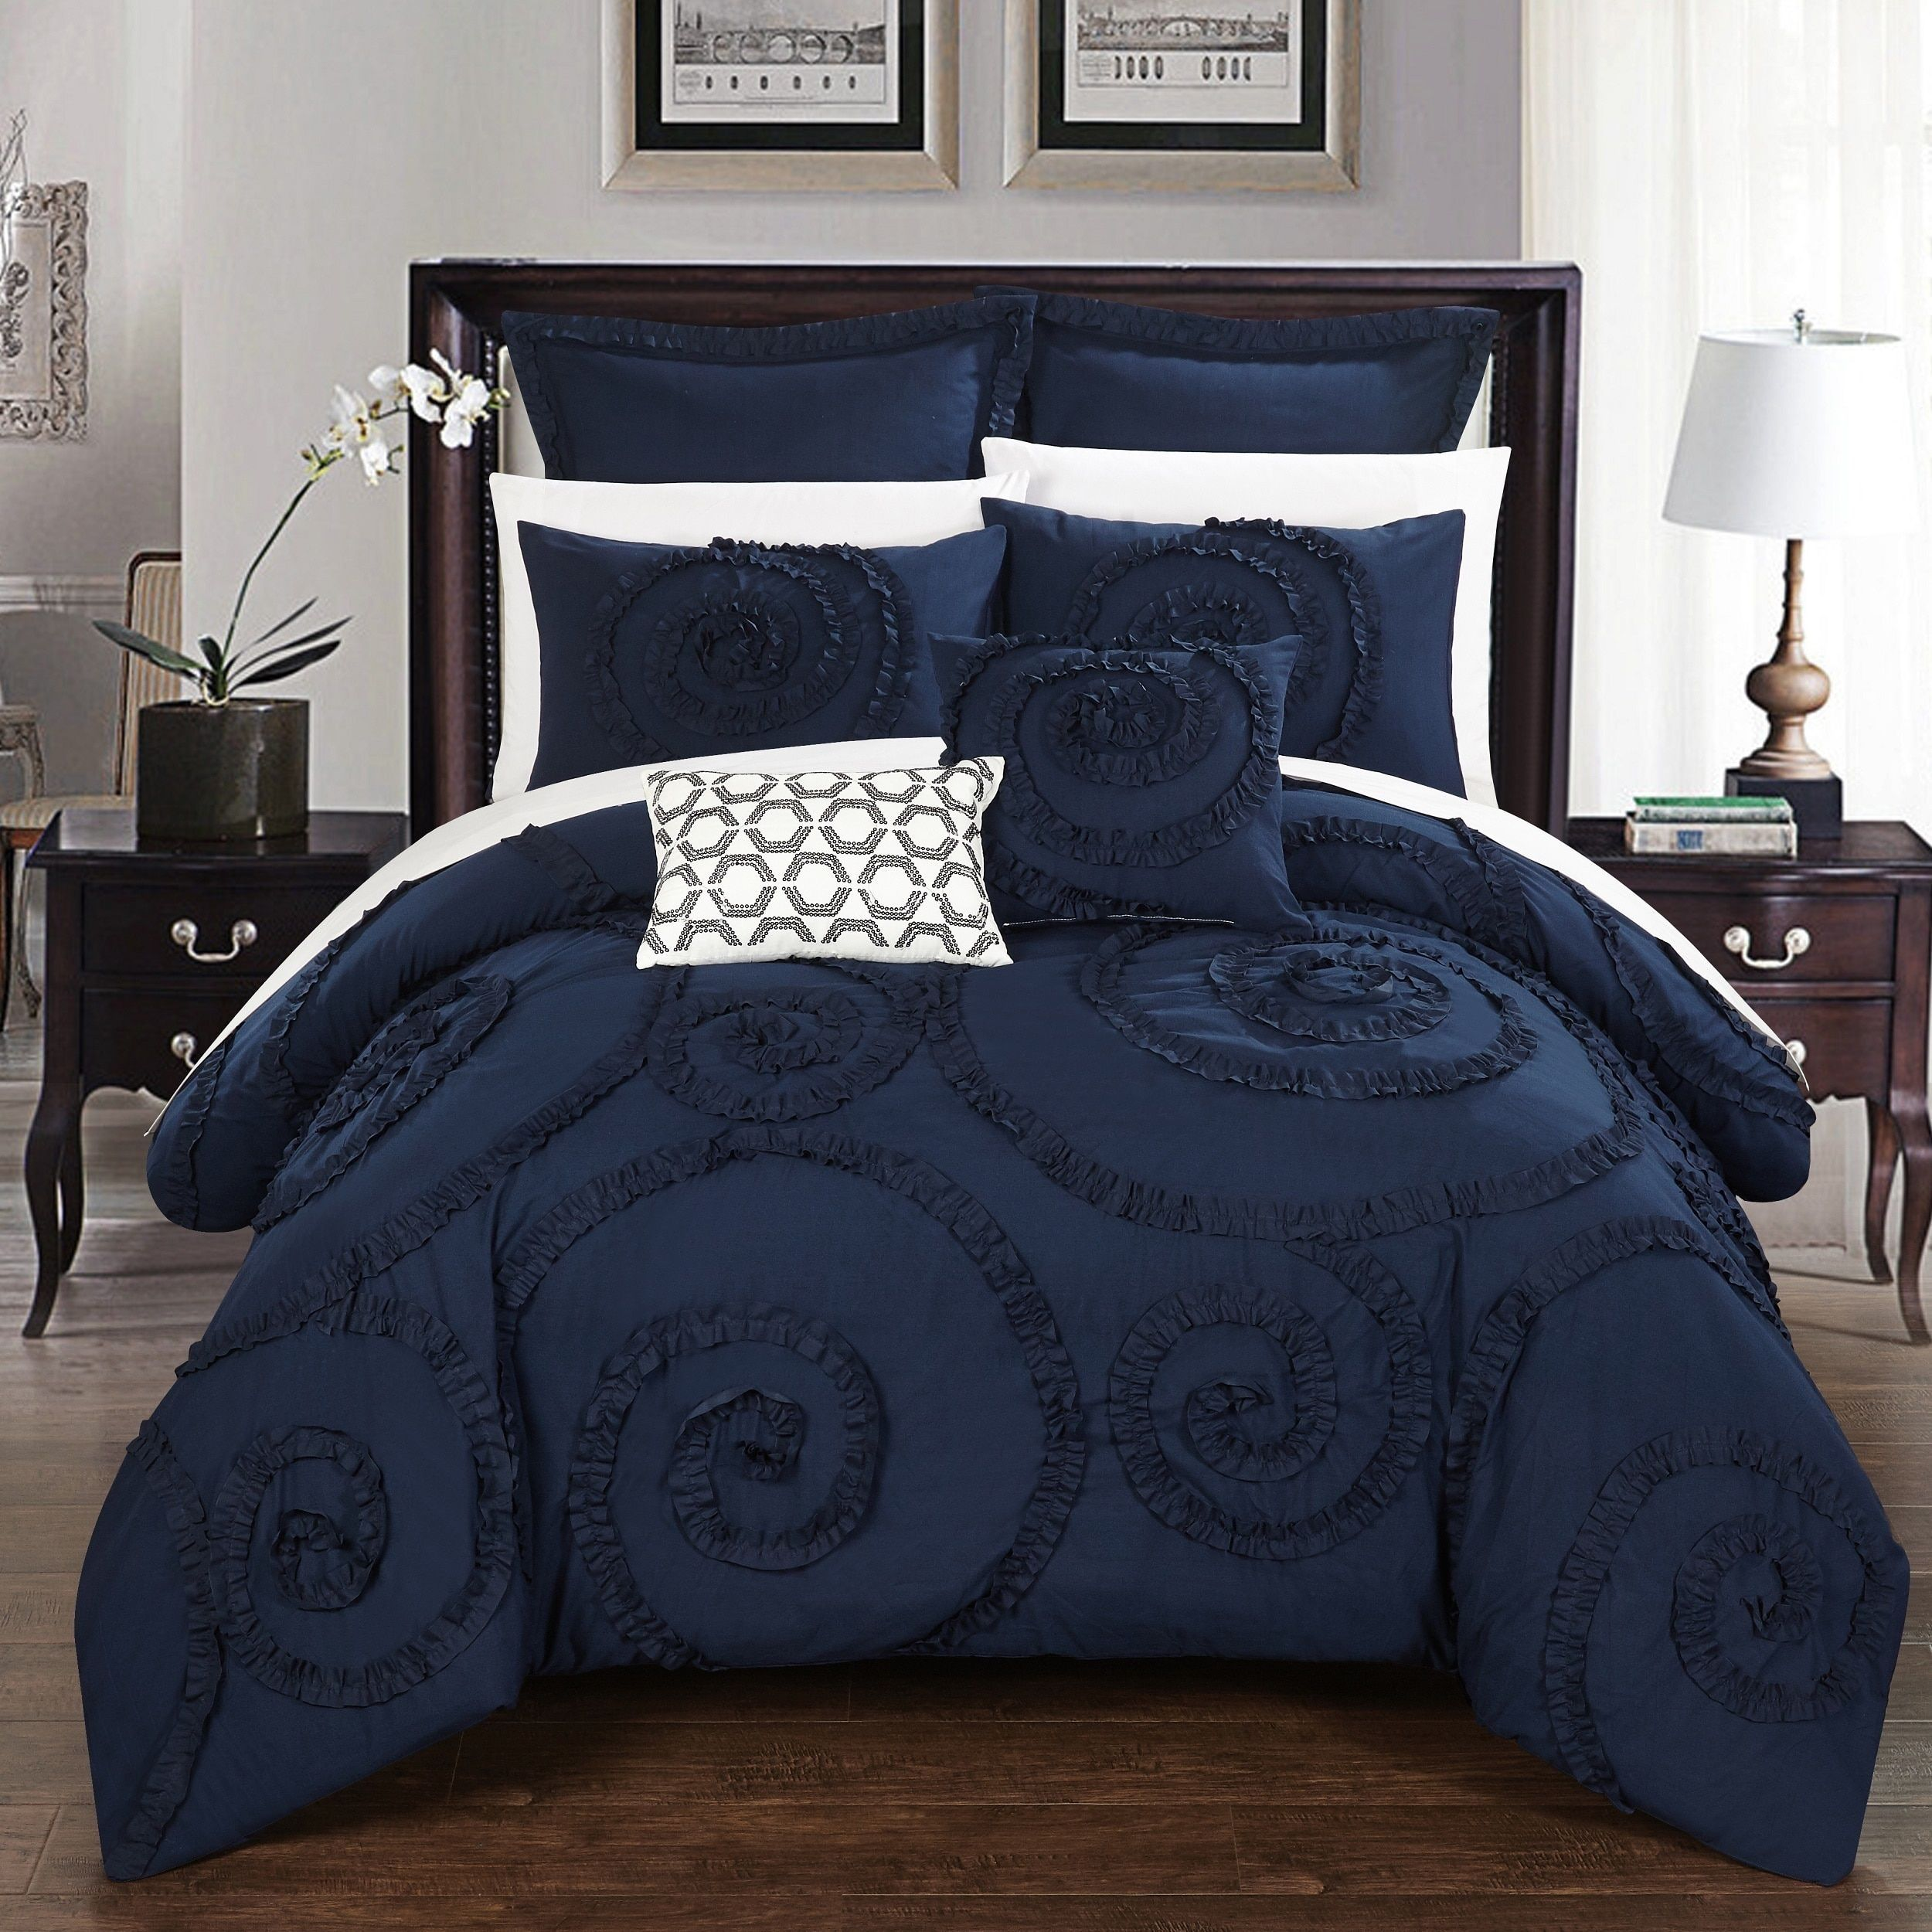 Overstock Com Online Shopping Bedding Furniture Electronics Jewelry Clothing More Navy Comforter Sets Comforter Sets King Comforter Sets